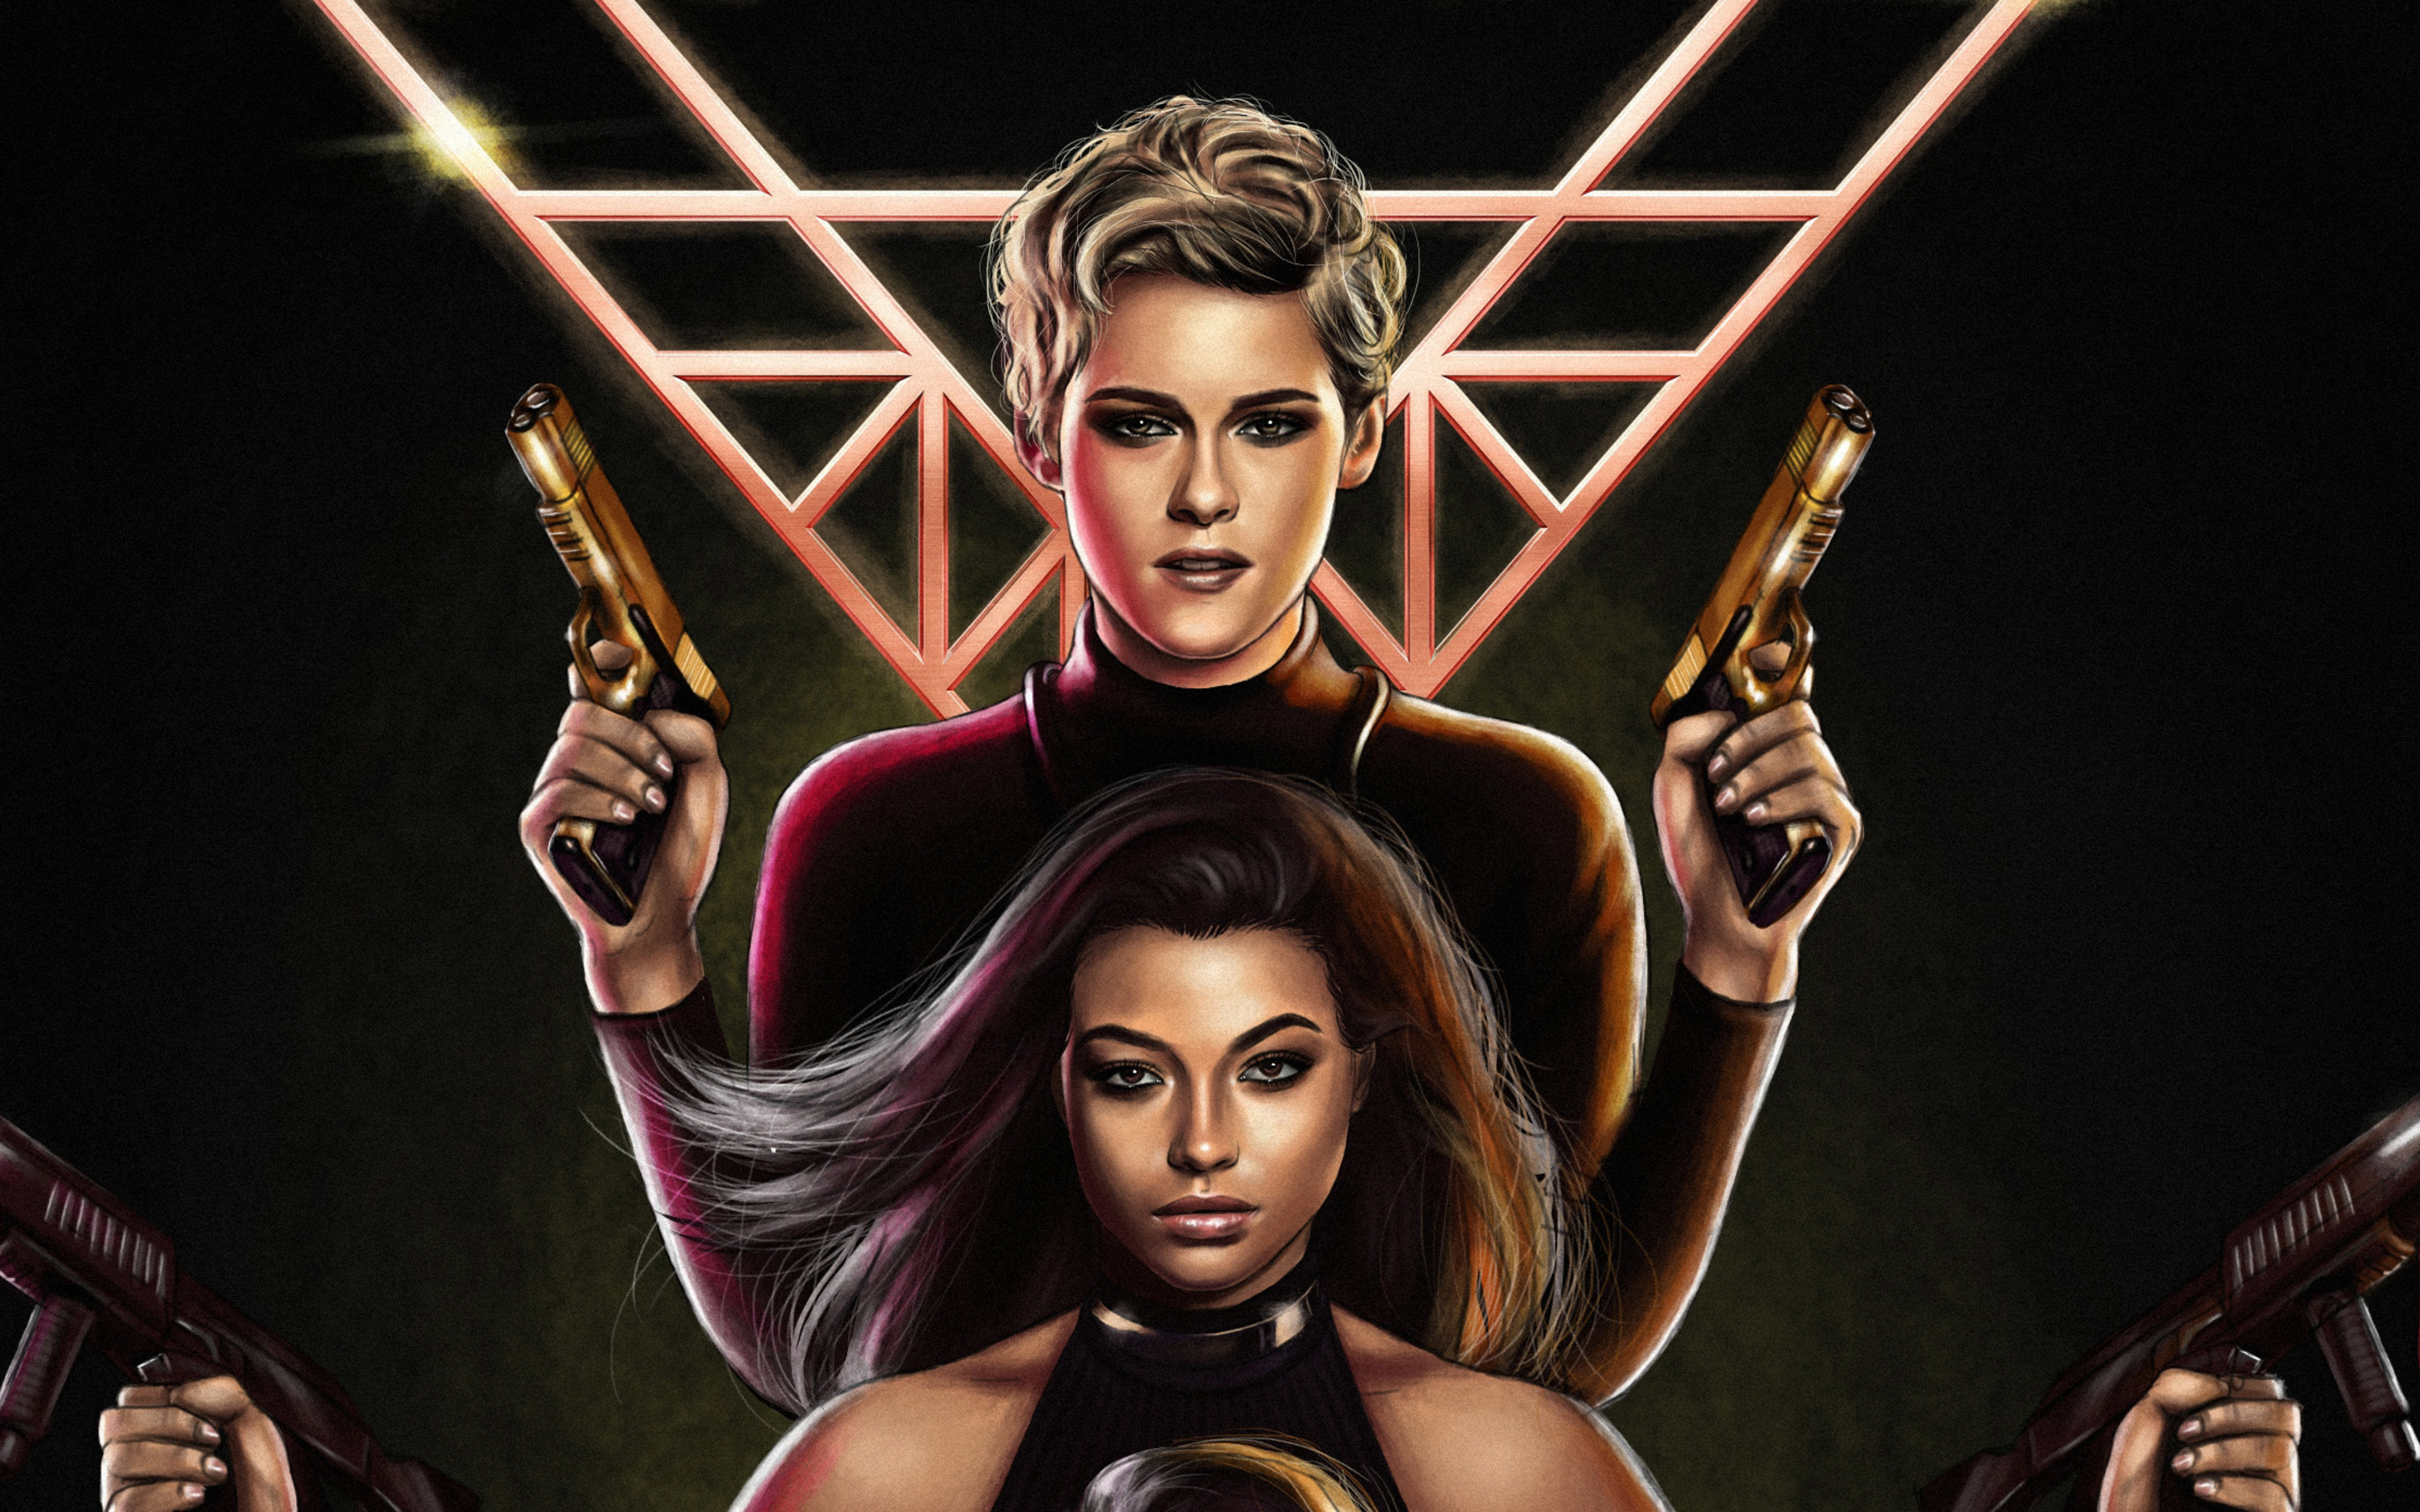 Wallpaper Sabrina and Jane in Charlie's Angels 2019